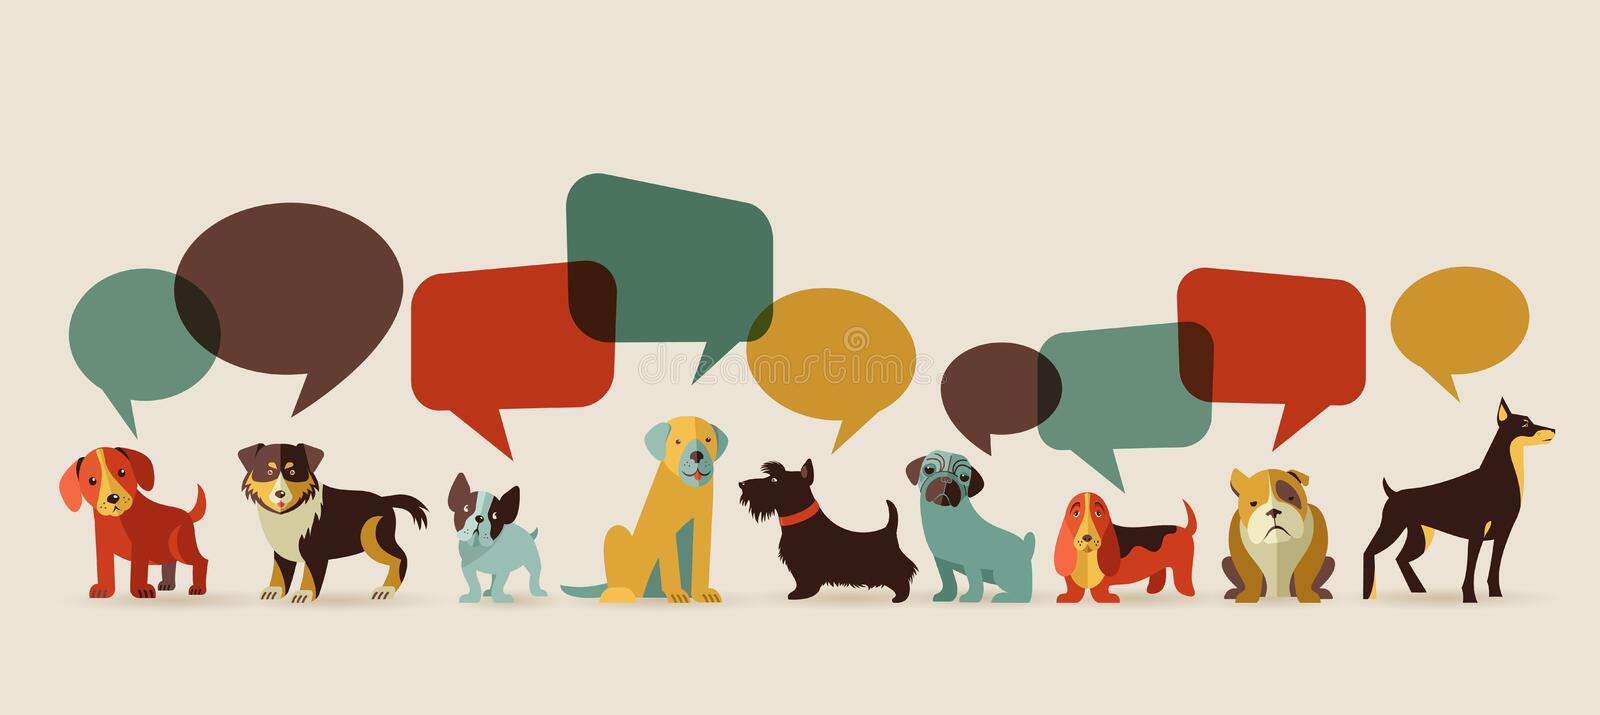 Dogs speaking - icons and illustrations stock illustration